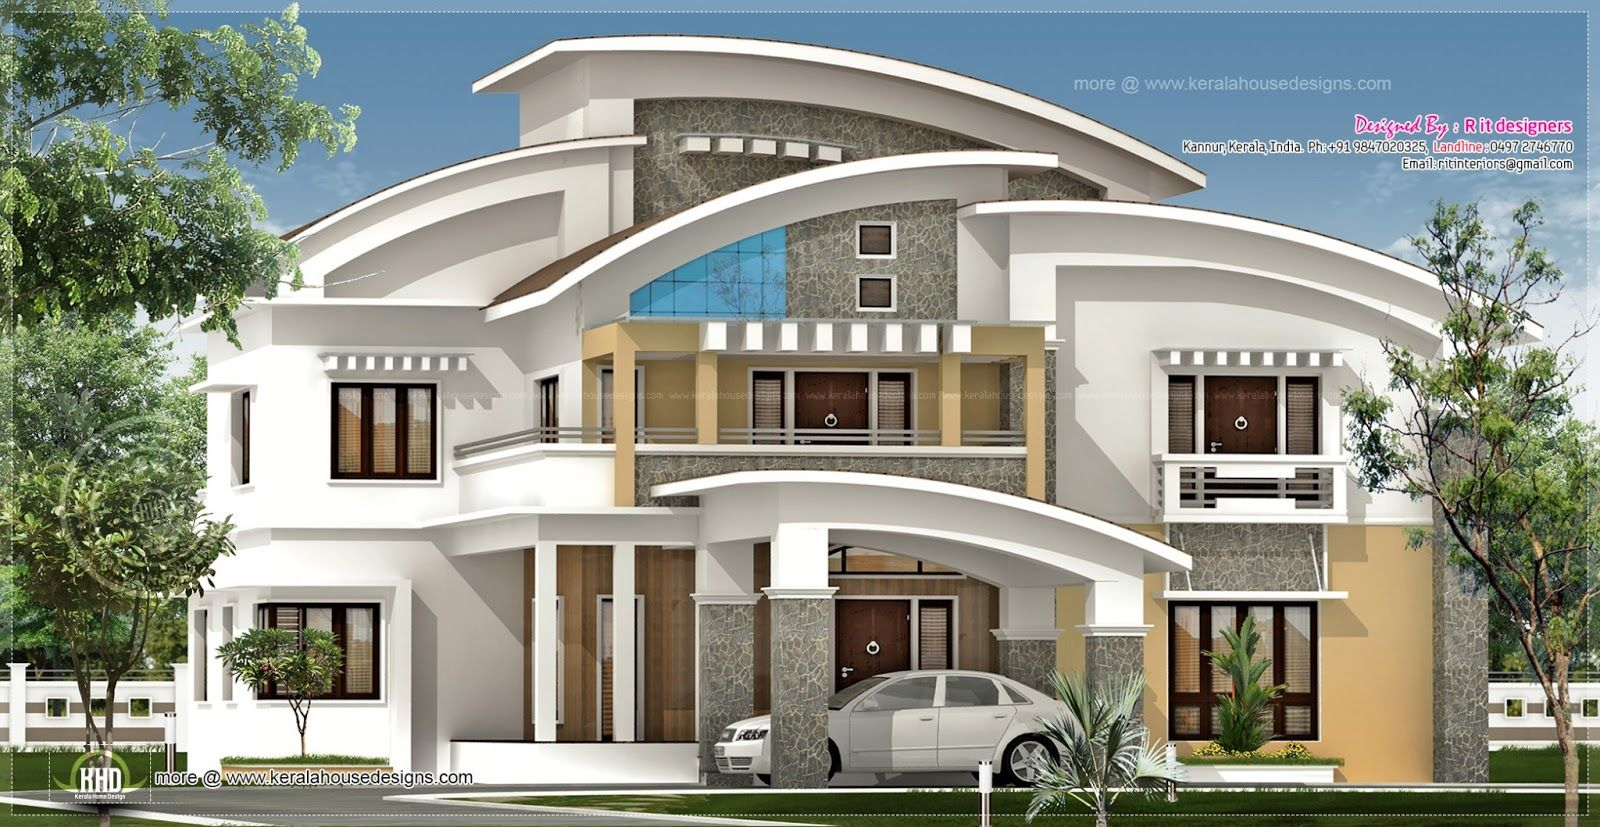 Awesome luxury homes plans 8 french country luxury home for Perfect house design